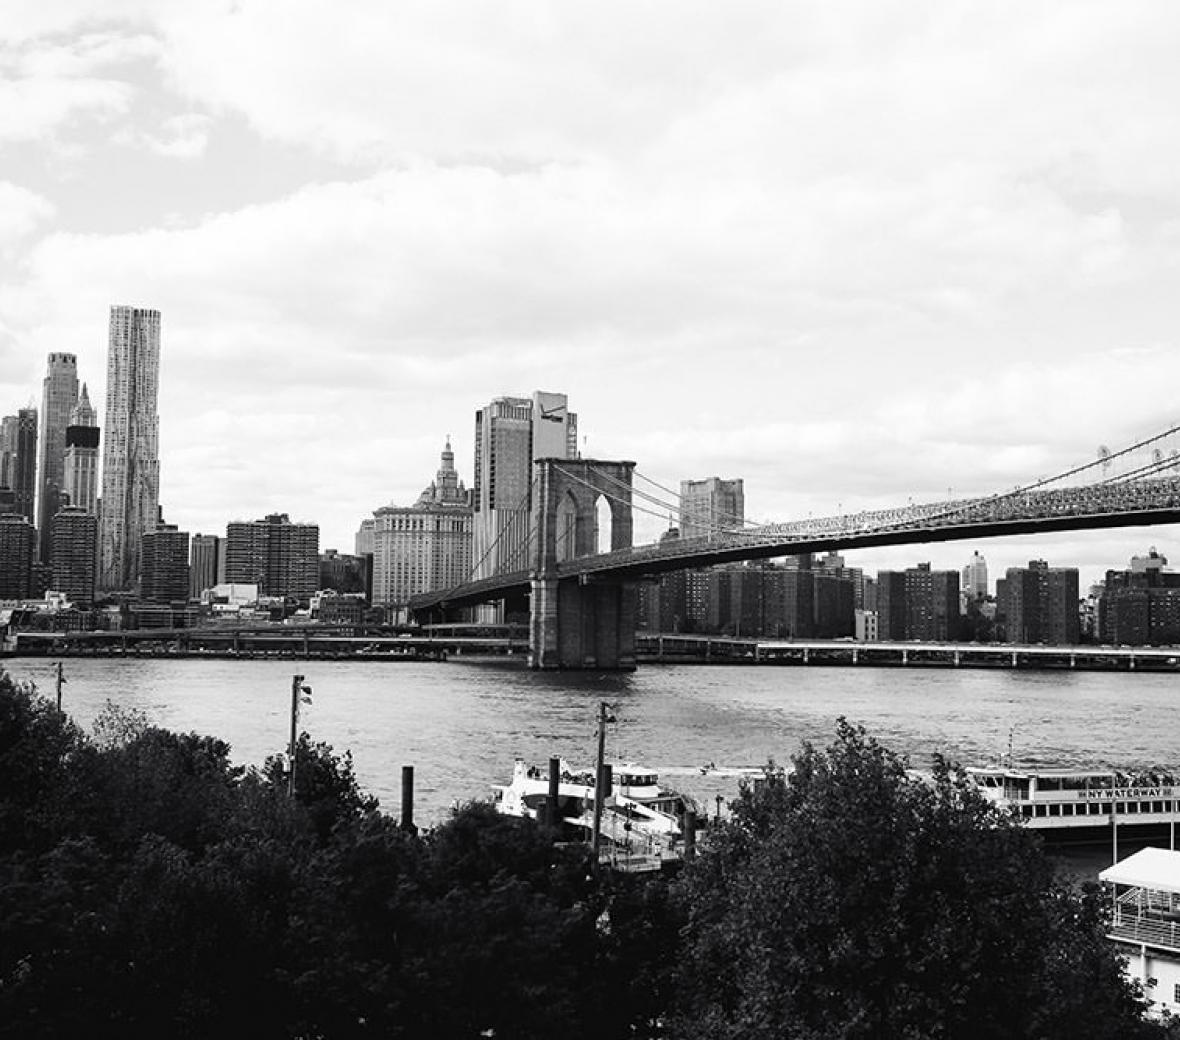 A black and white image of the Brooklyn Bridge and Manhattan skyline.